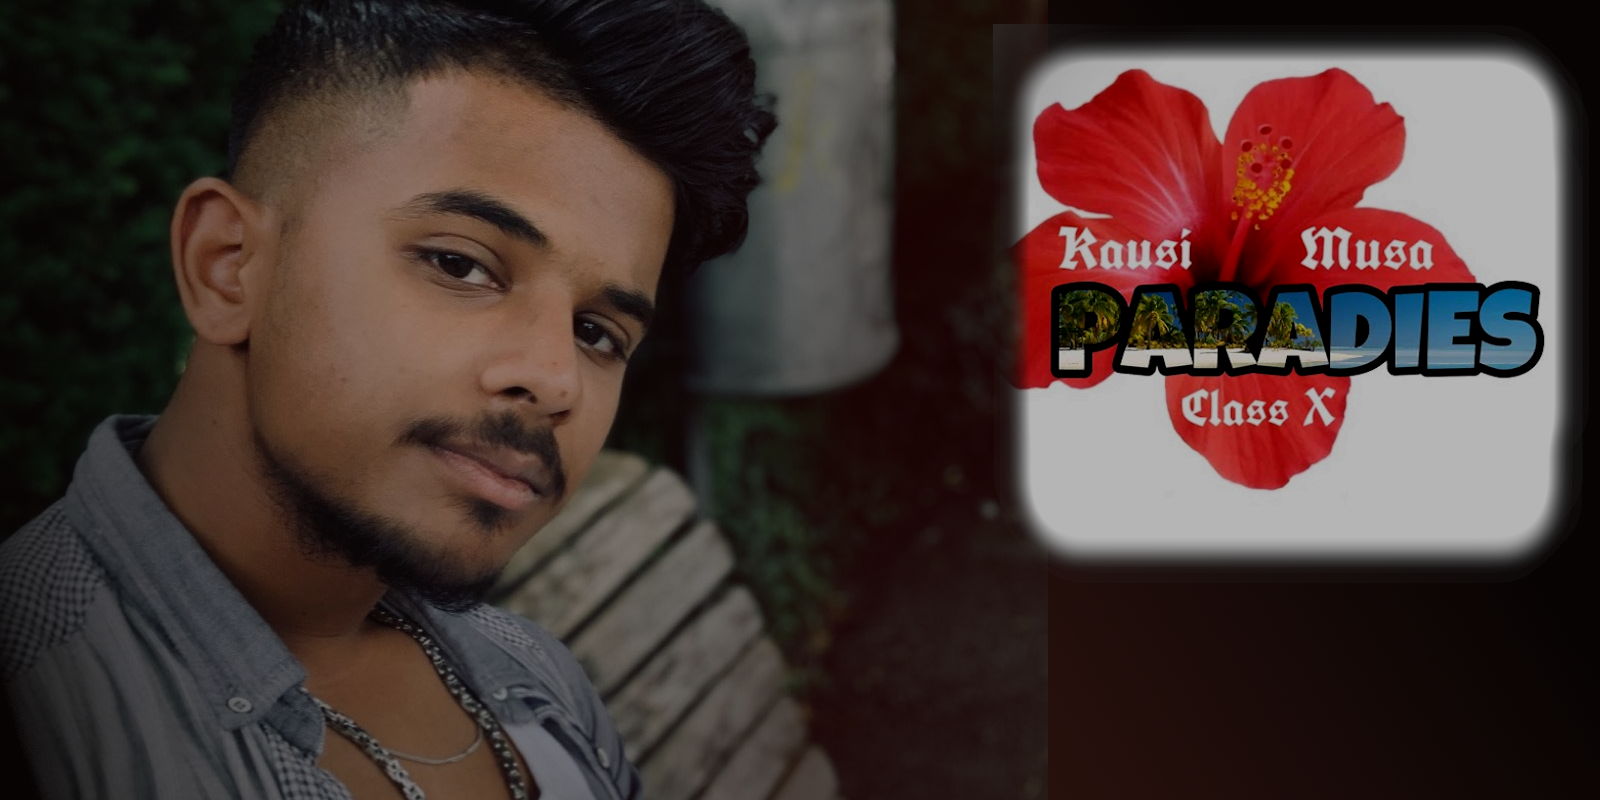 LYRICS-League-Gewinner Kausi mit neuer Single